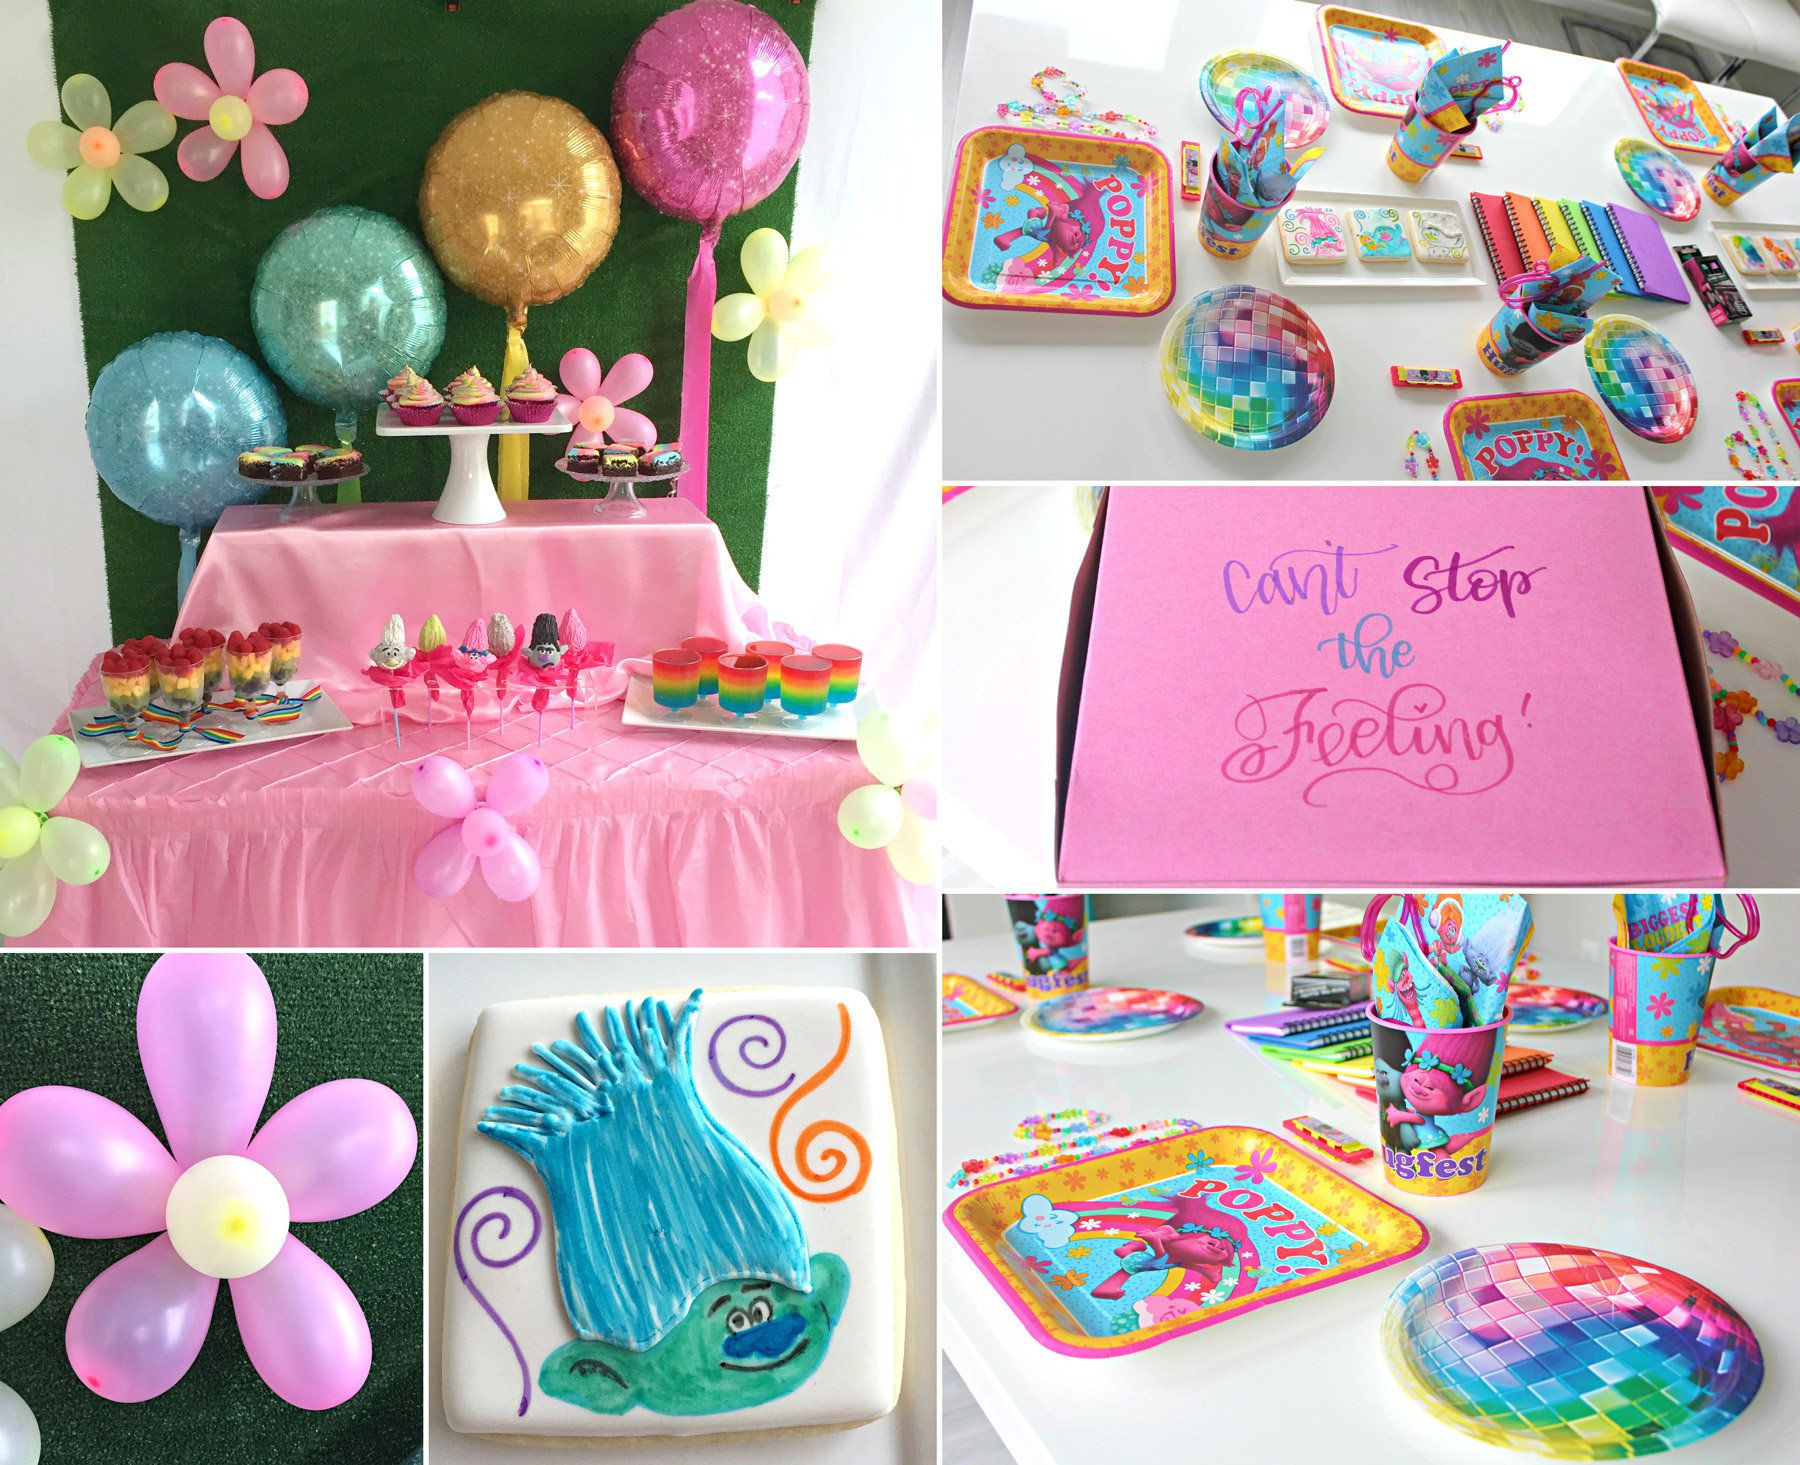 Best ideas about Trolls Birthday Decorations . Save or Pin Trolls Party Ideas Now.